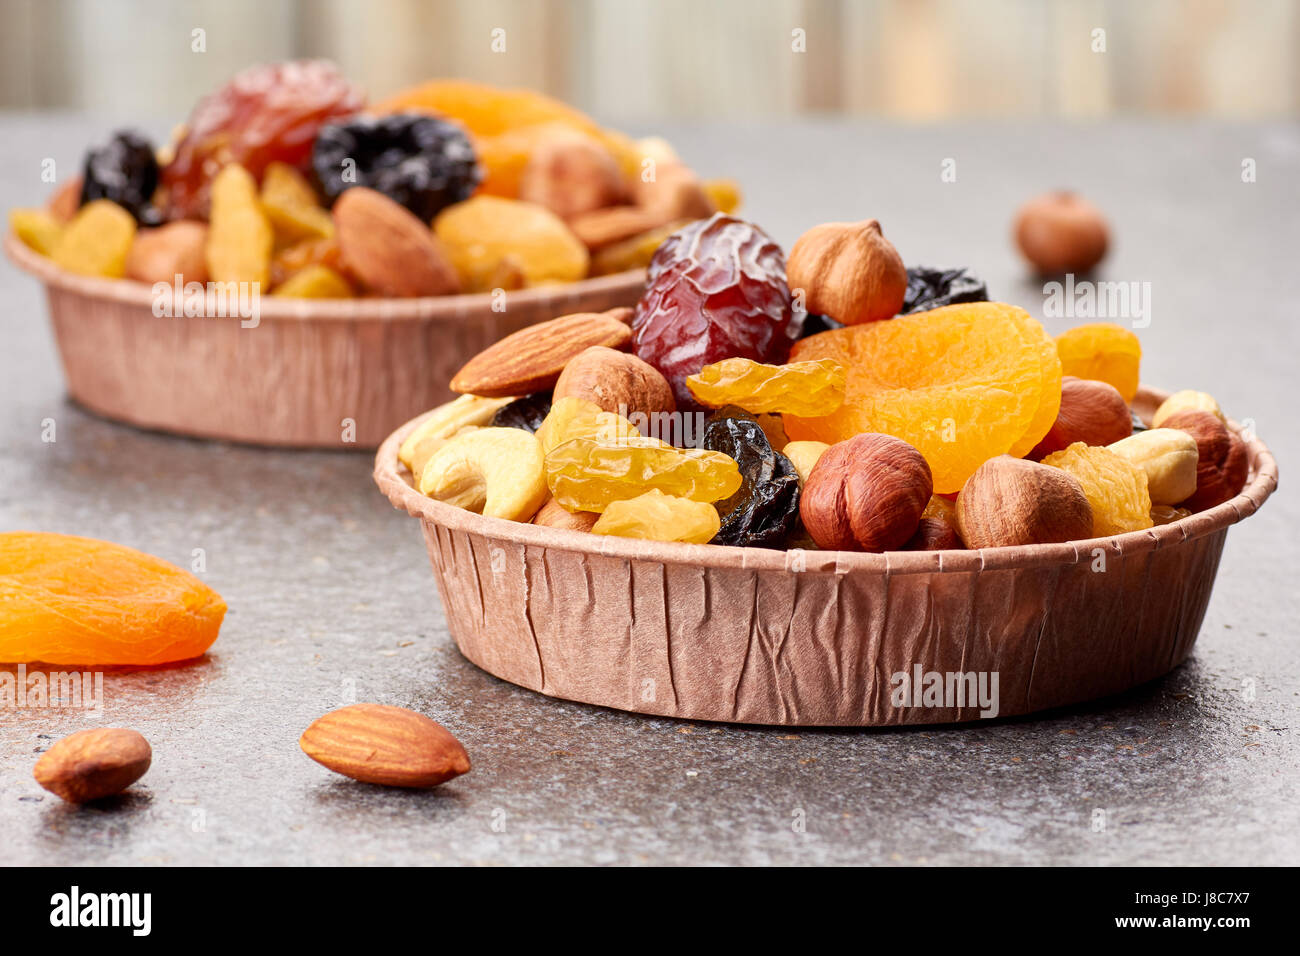 Paper forms with mix of dried fruits and nuts over stone background - Stock Image